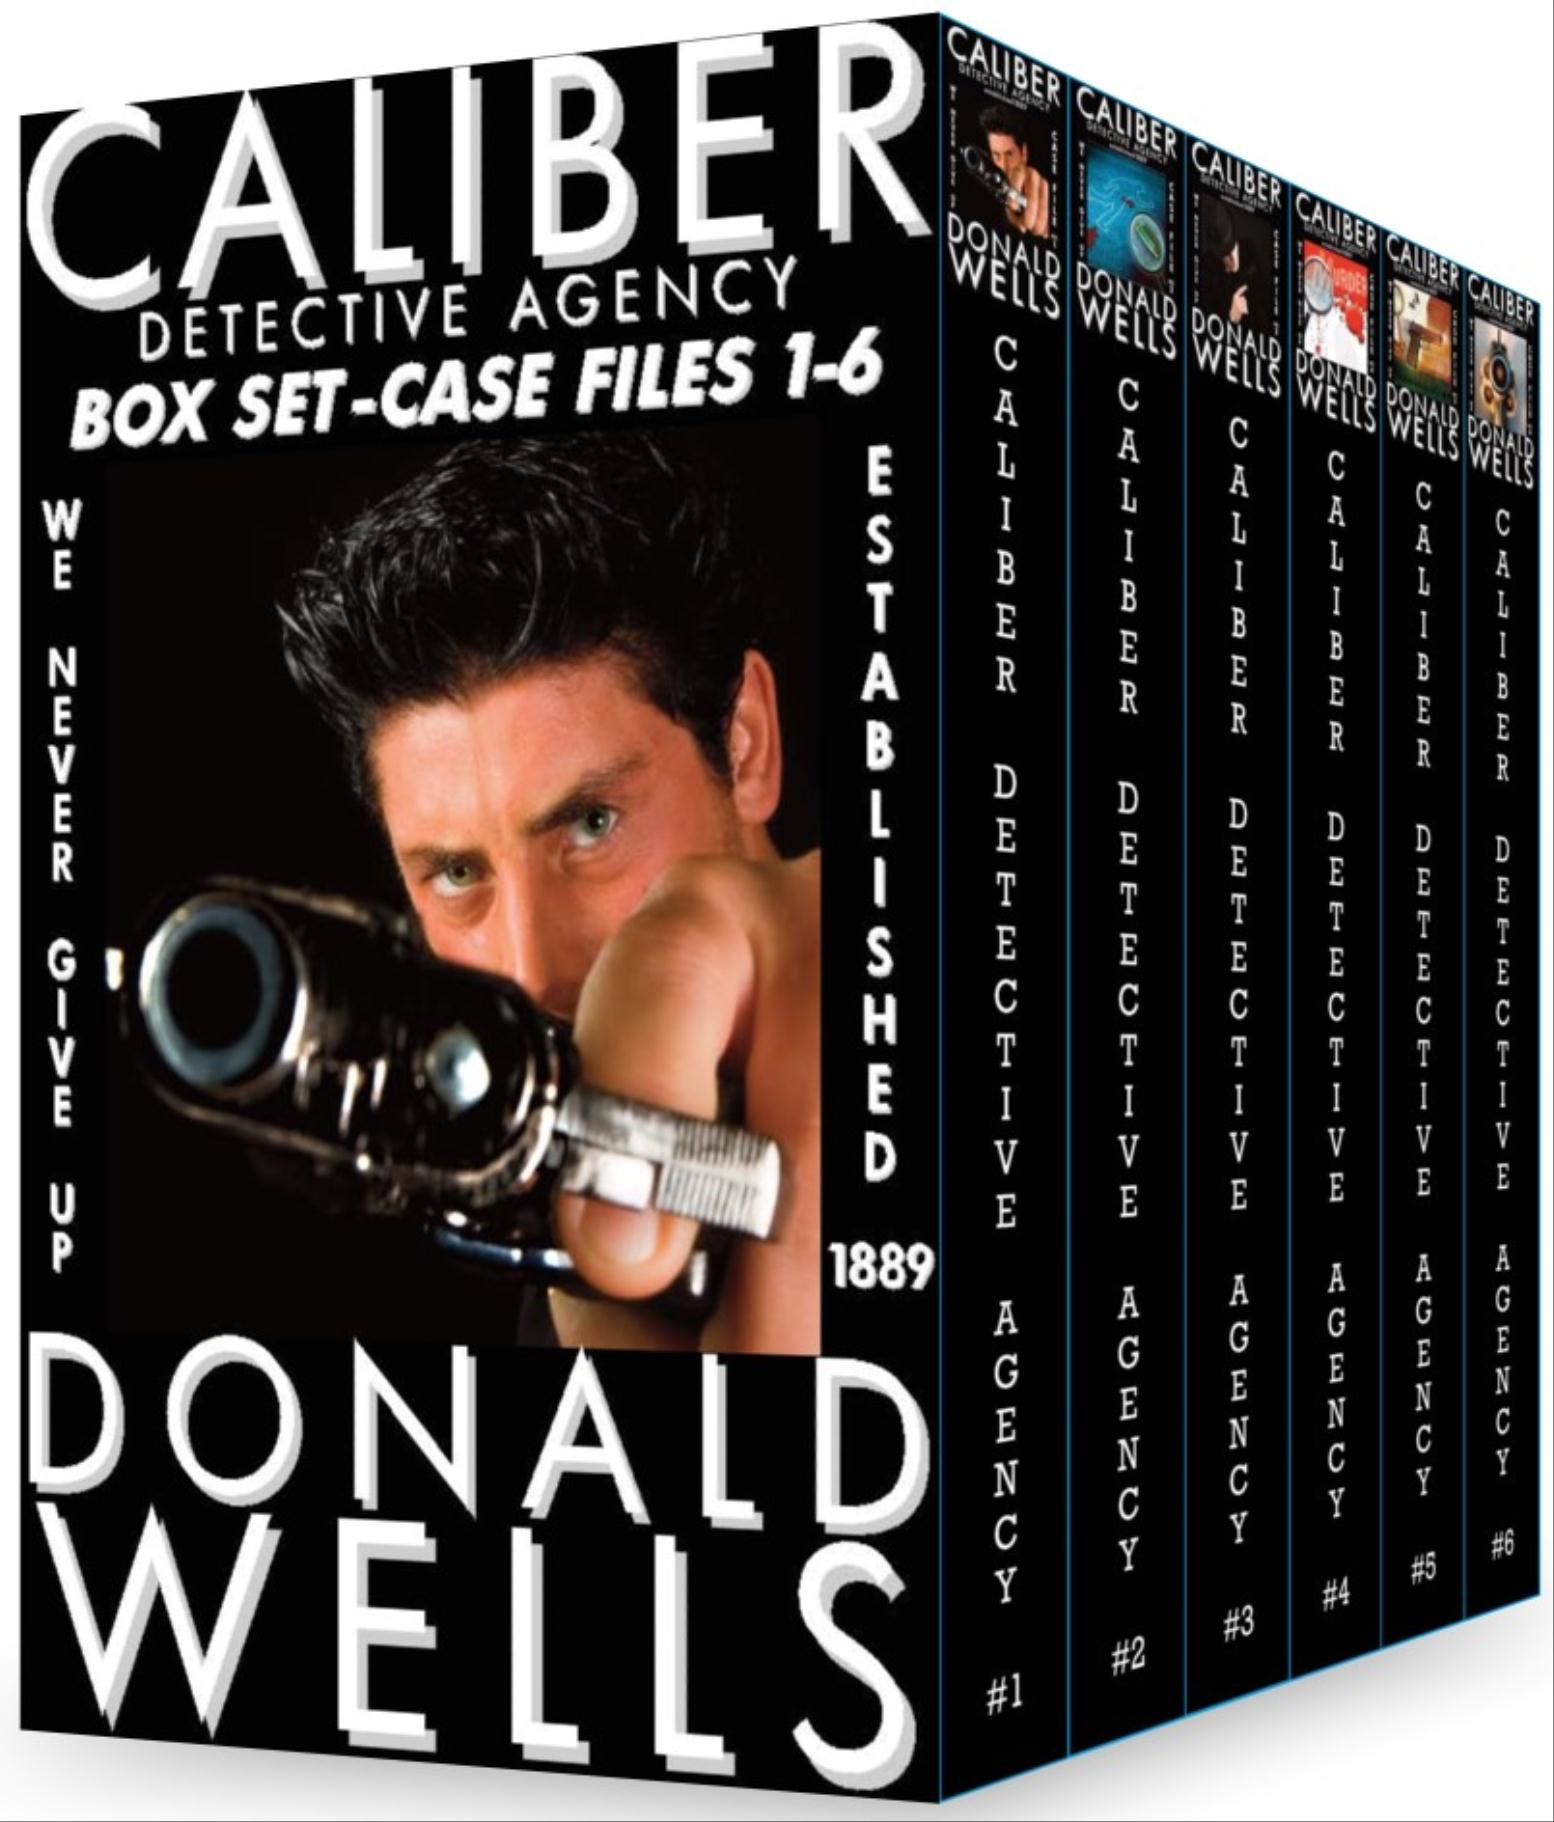 Caliber Detective Agency - Box Set - Case Files 1-6